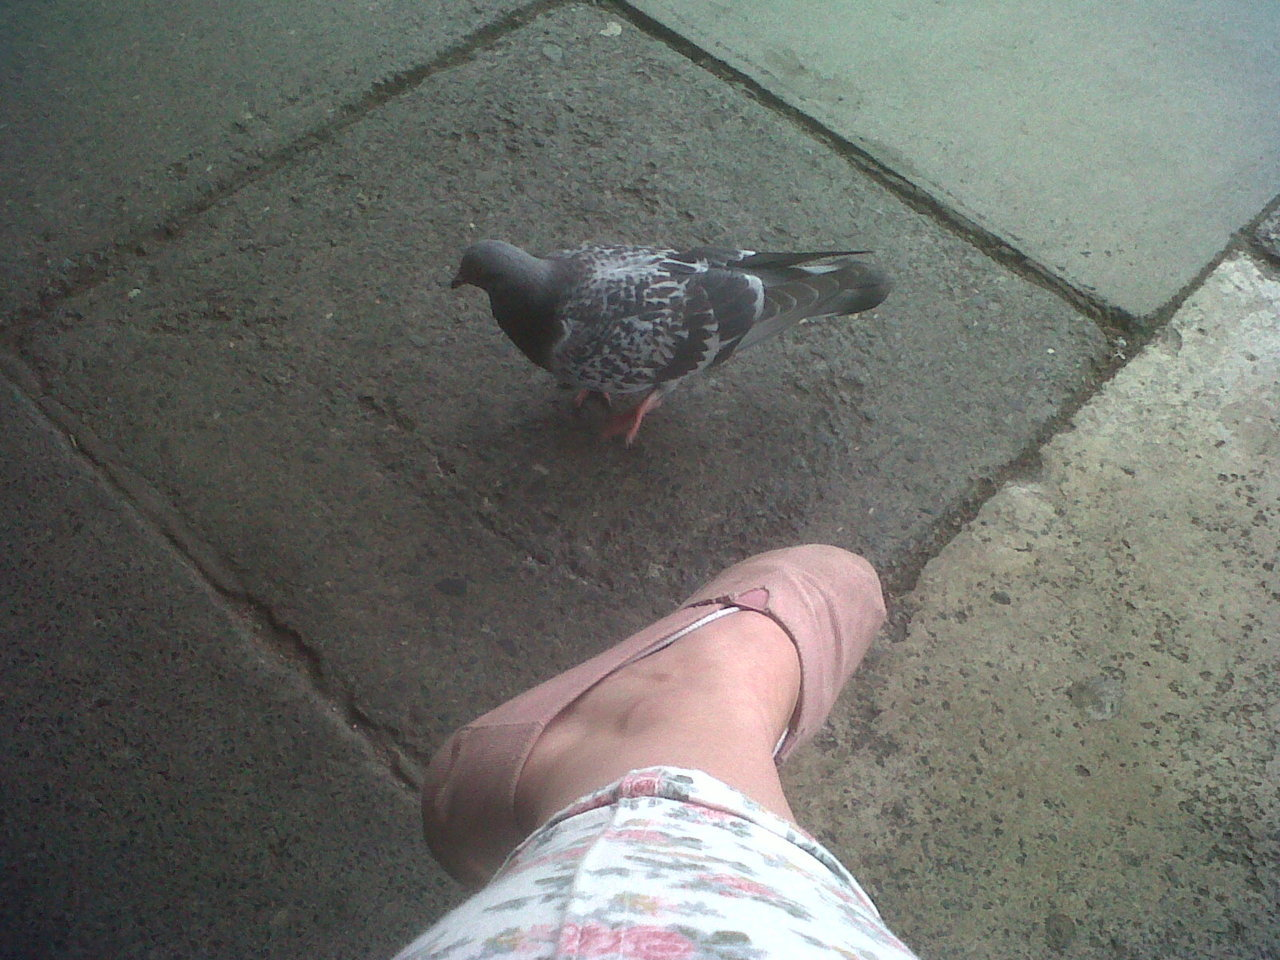 You sir are too close to my shoe